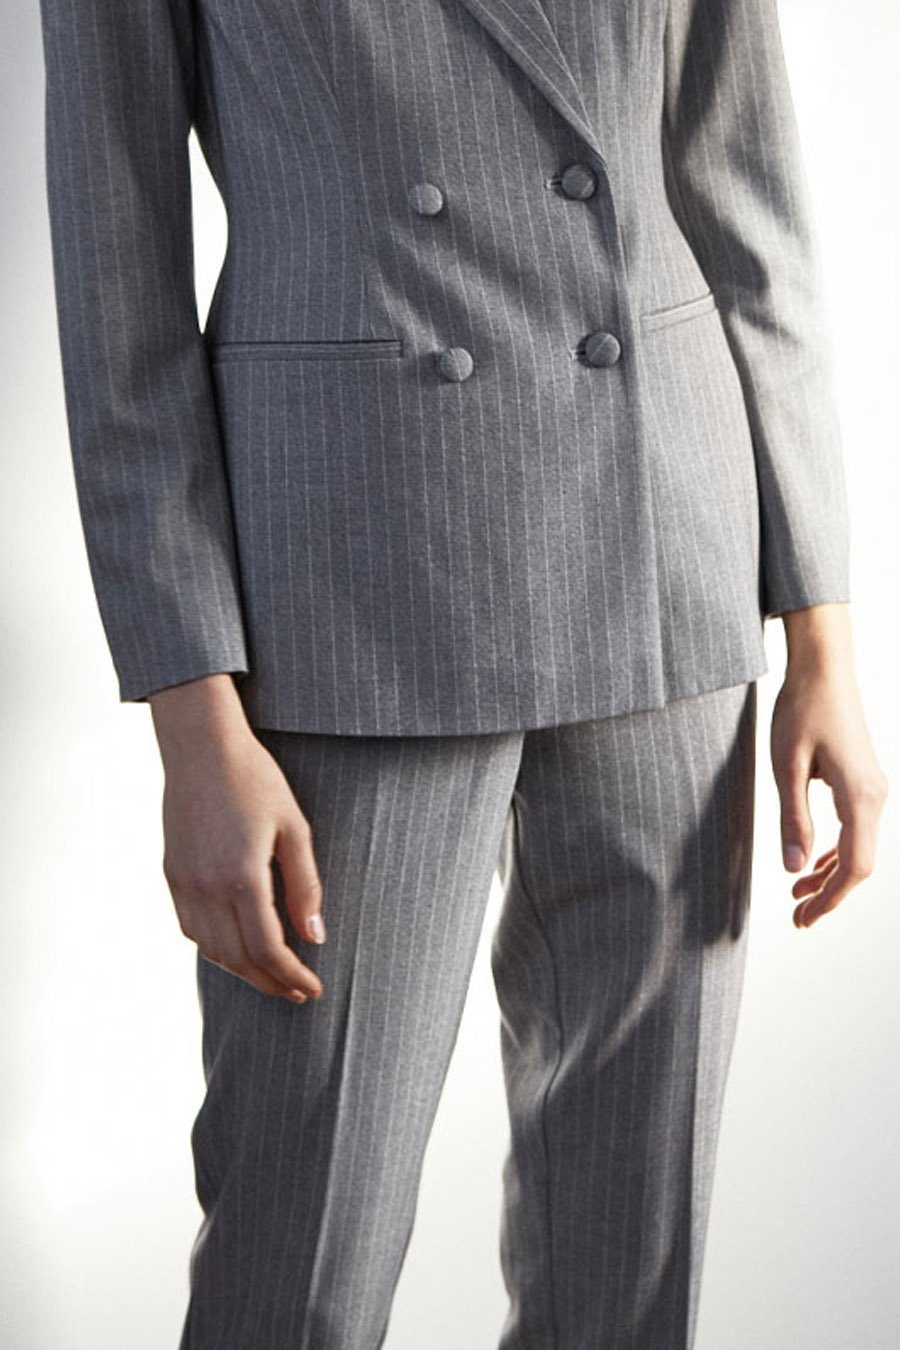 BRIXTON TROUSERS - GREY PINSTIRPE Trousers Stylein